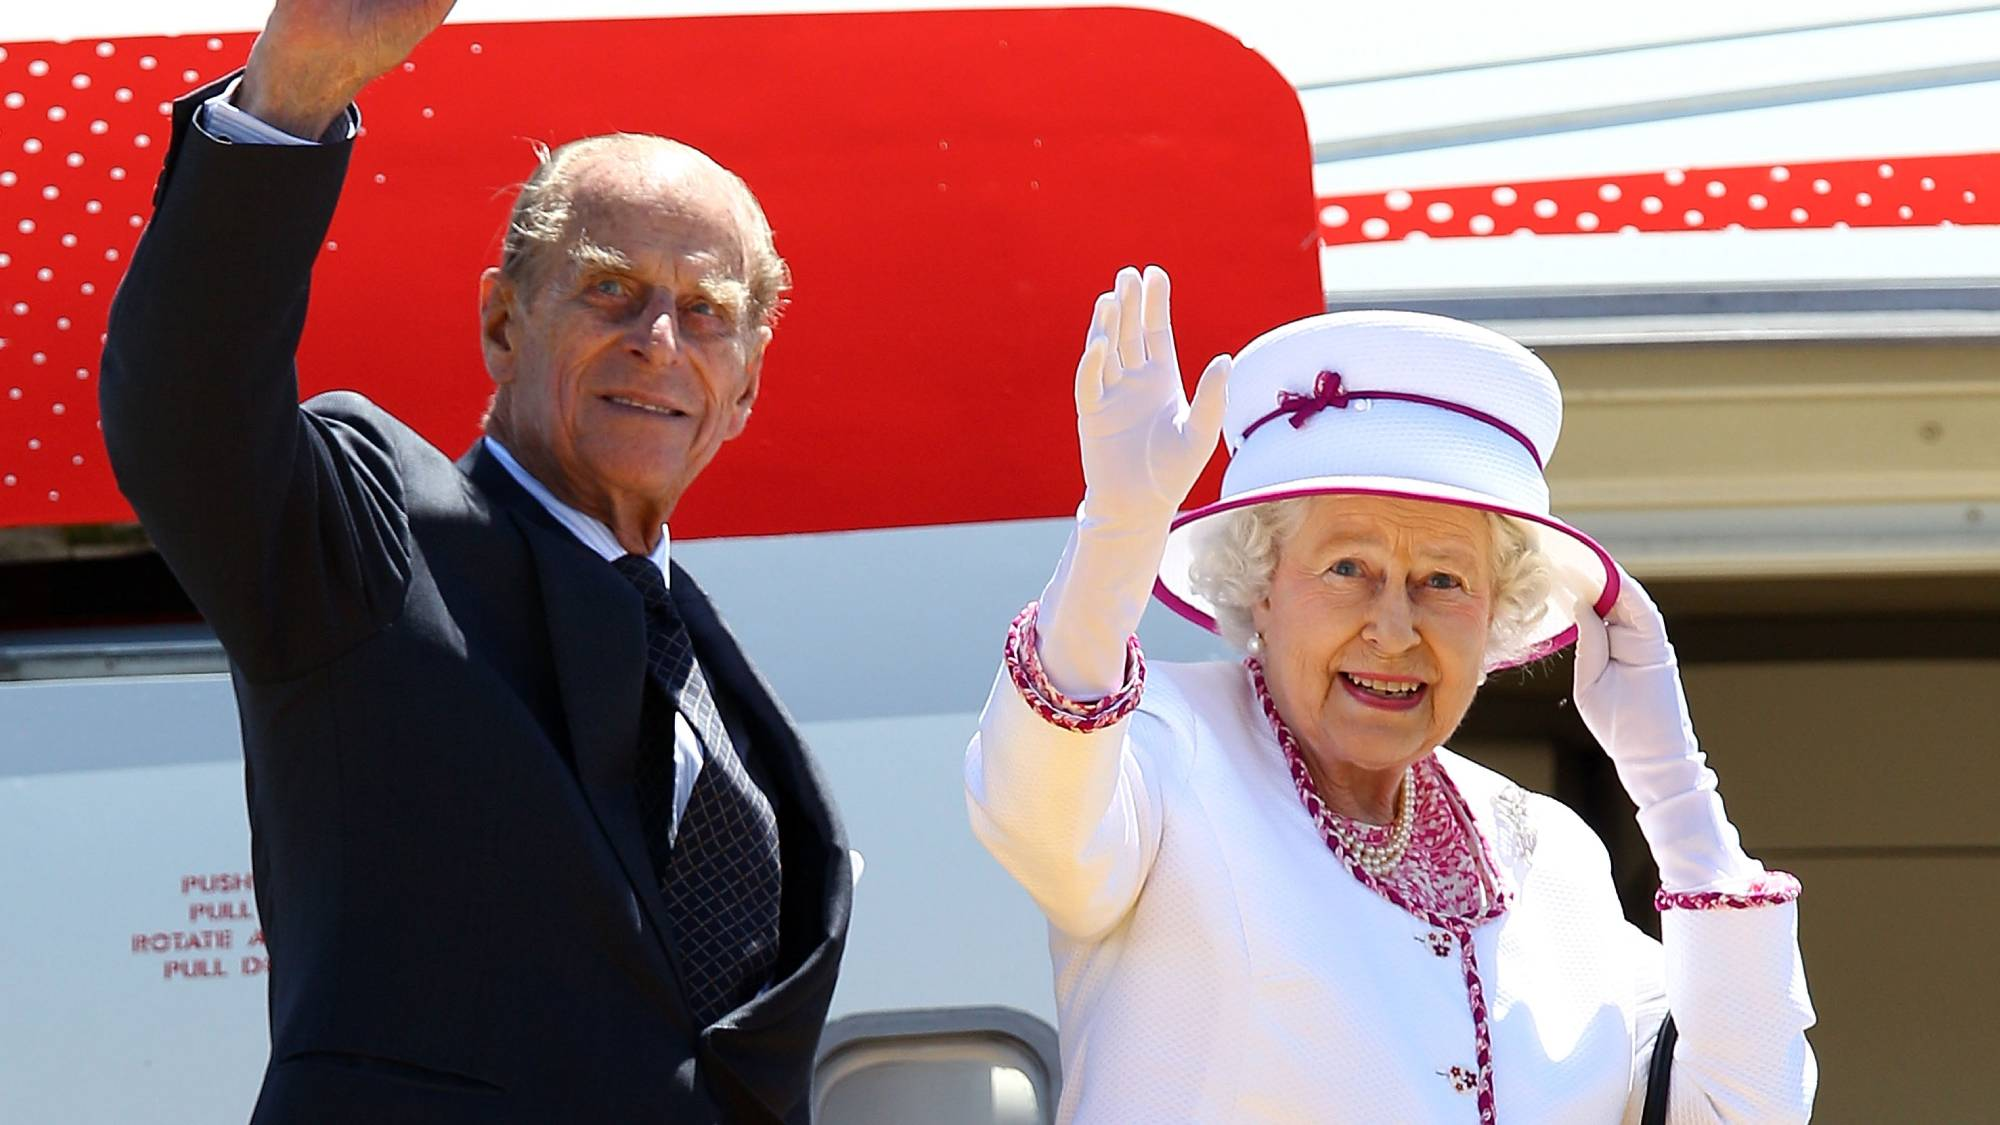 Apparently the Queen always travels with Earl Grey teabags